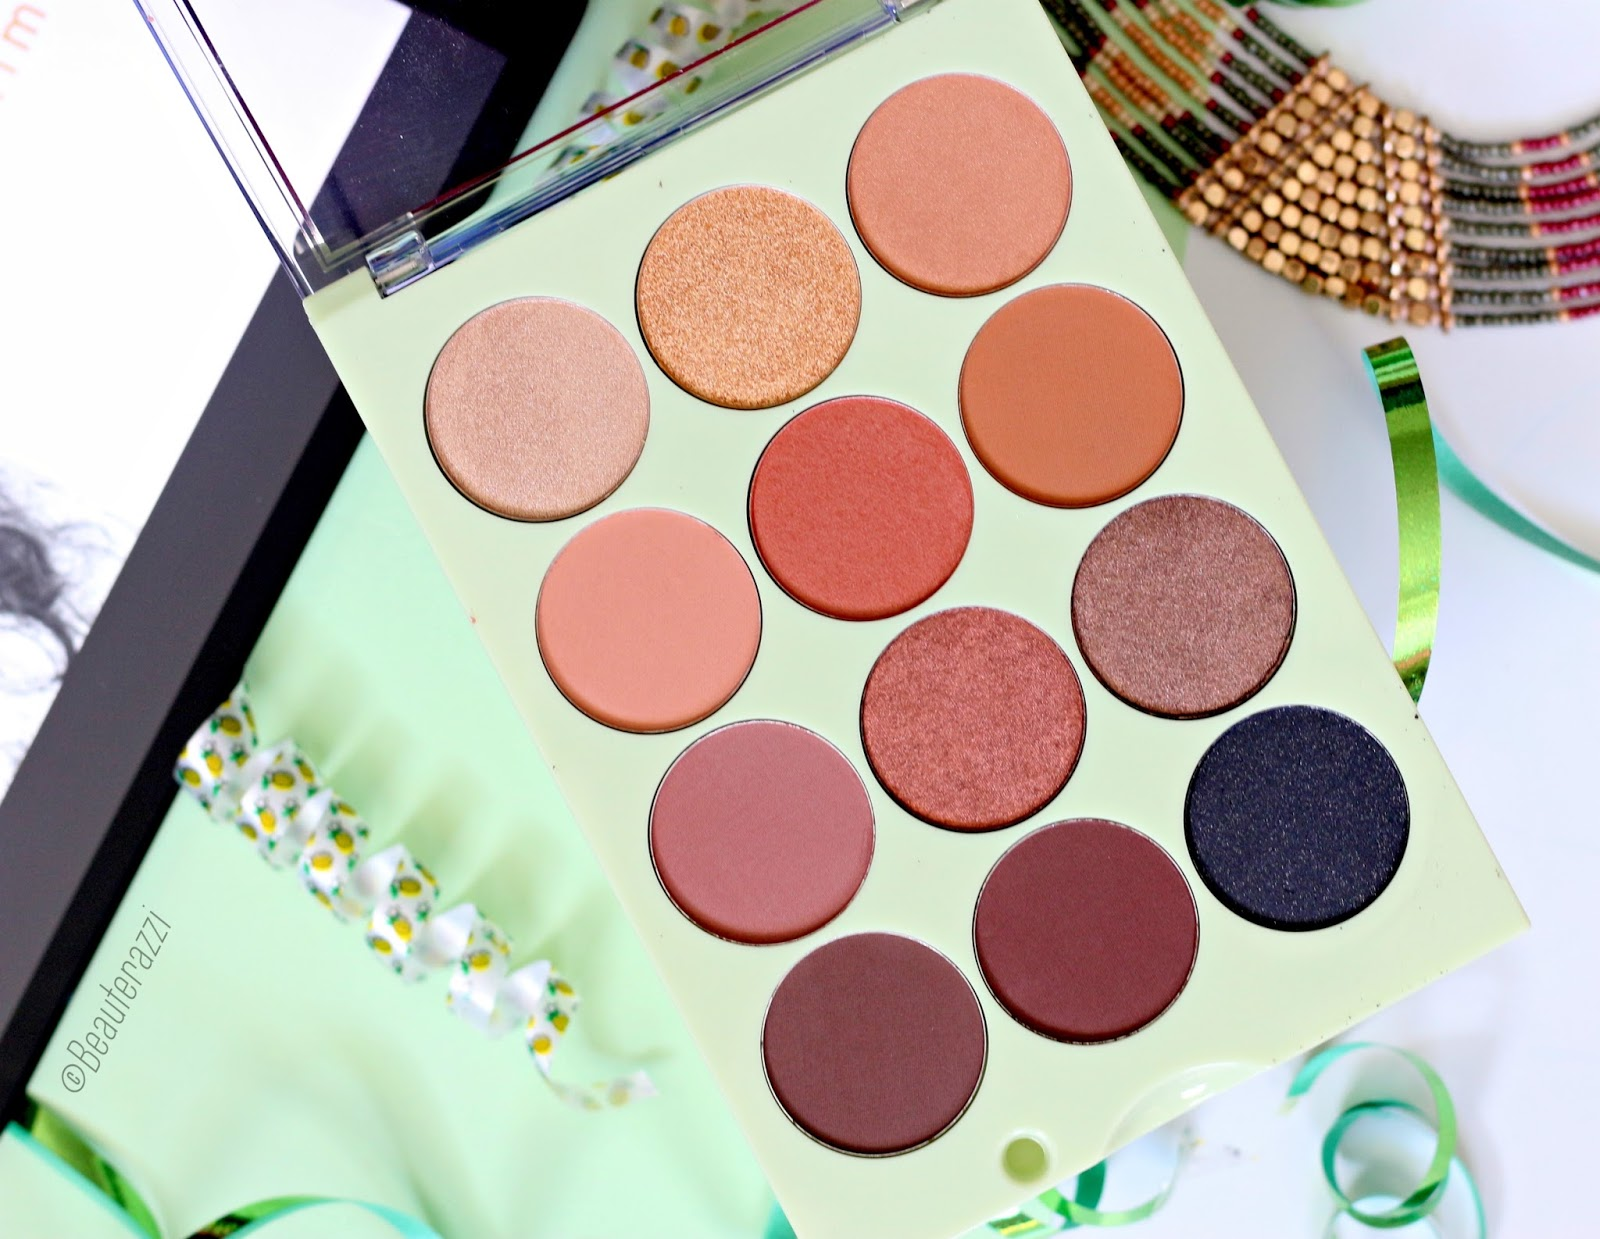 Pixi + Its Judy Time Its Eye Time Eyeshadow Palette - Review